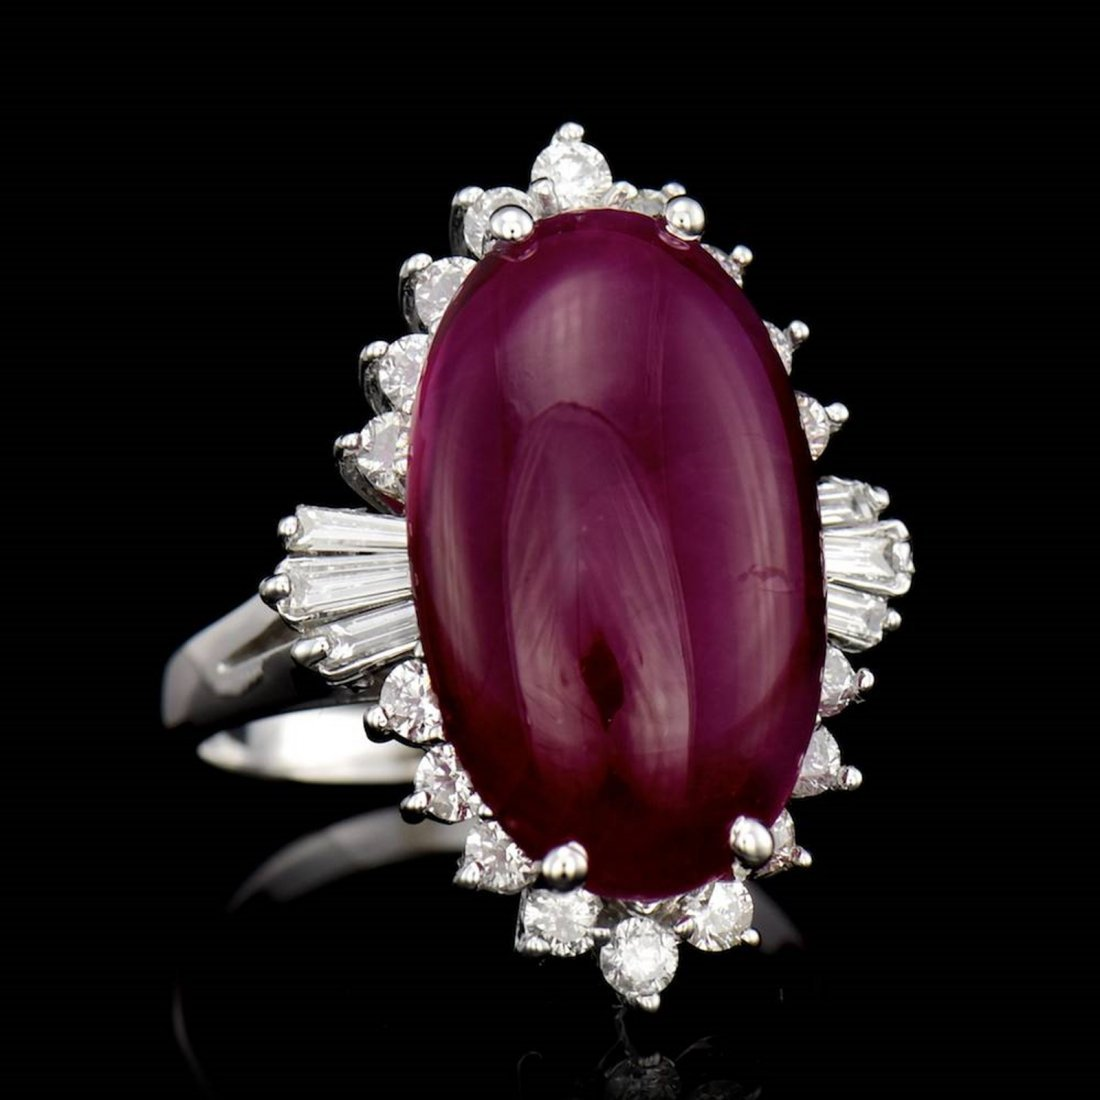 ONE CENTER OVAL SHAPE NATURAL CABOCHON RUBY TW 11.48CTS